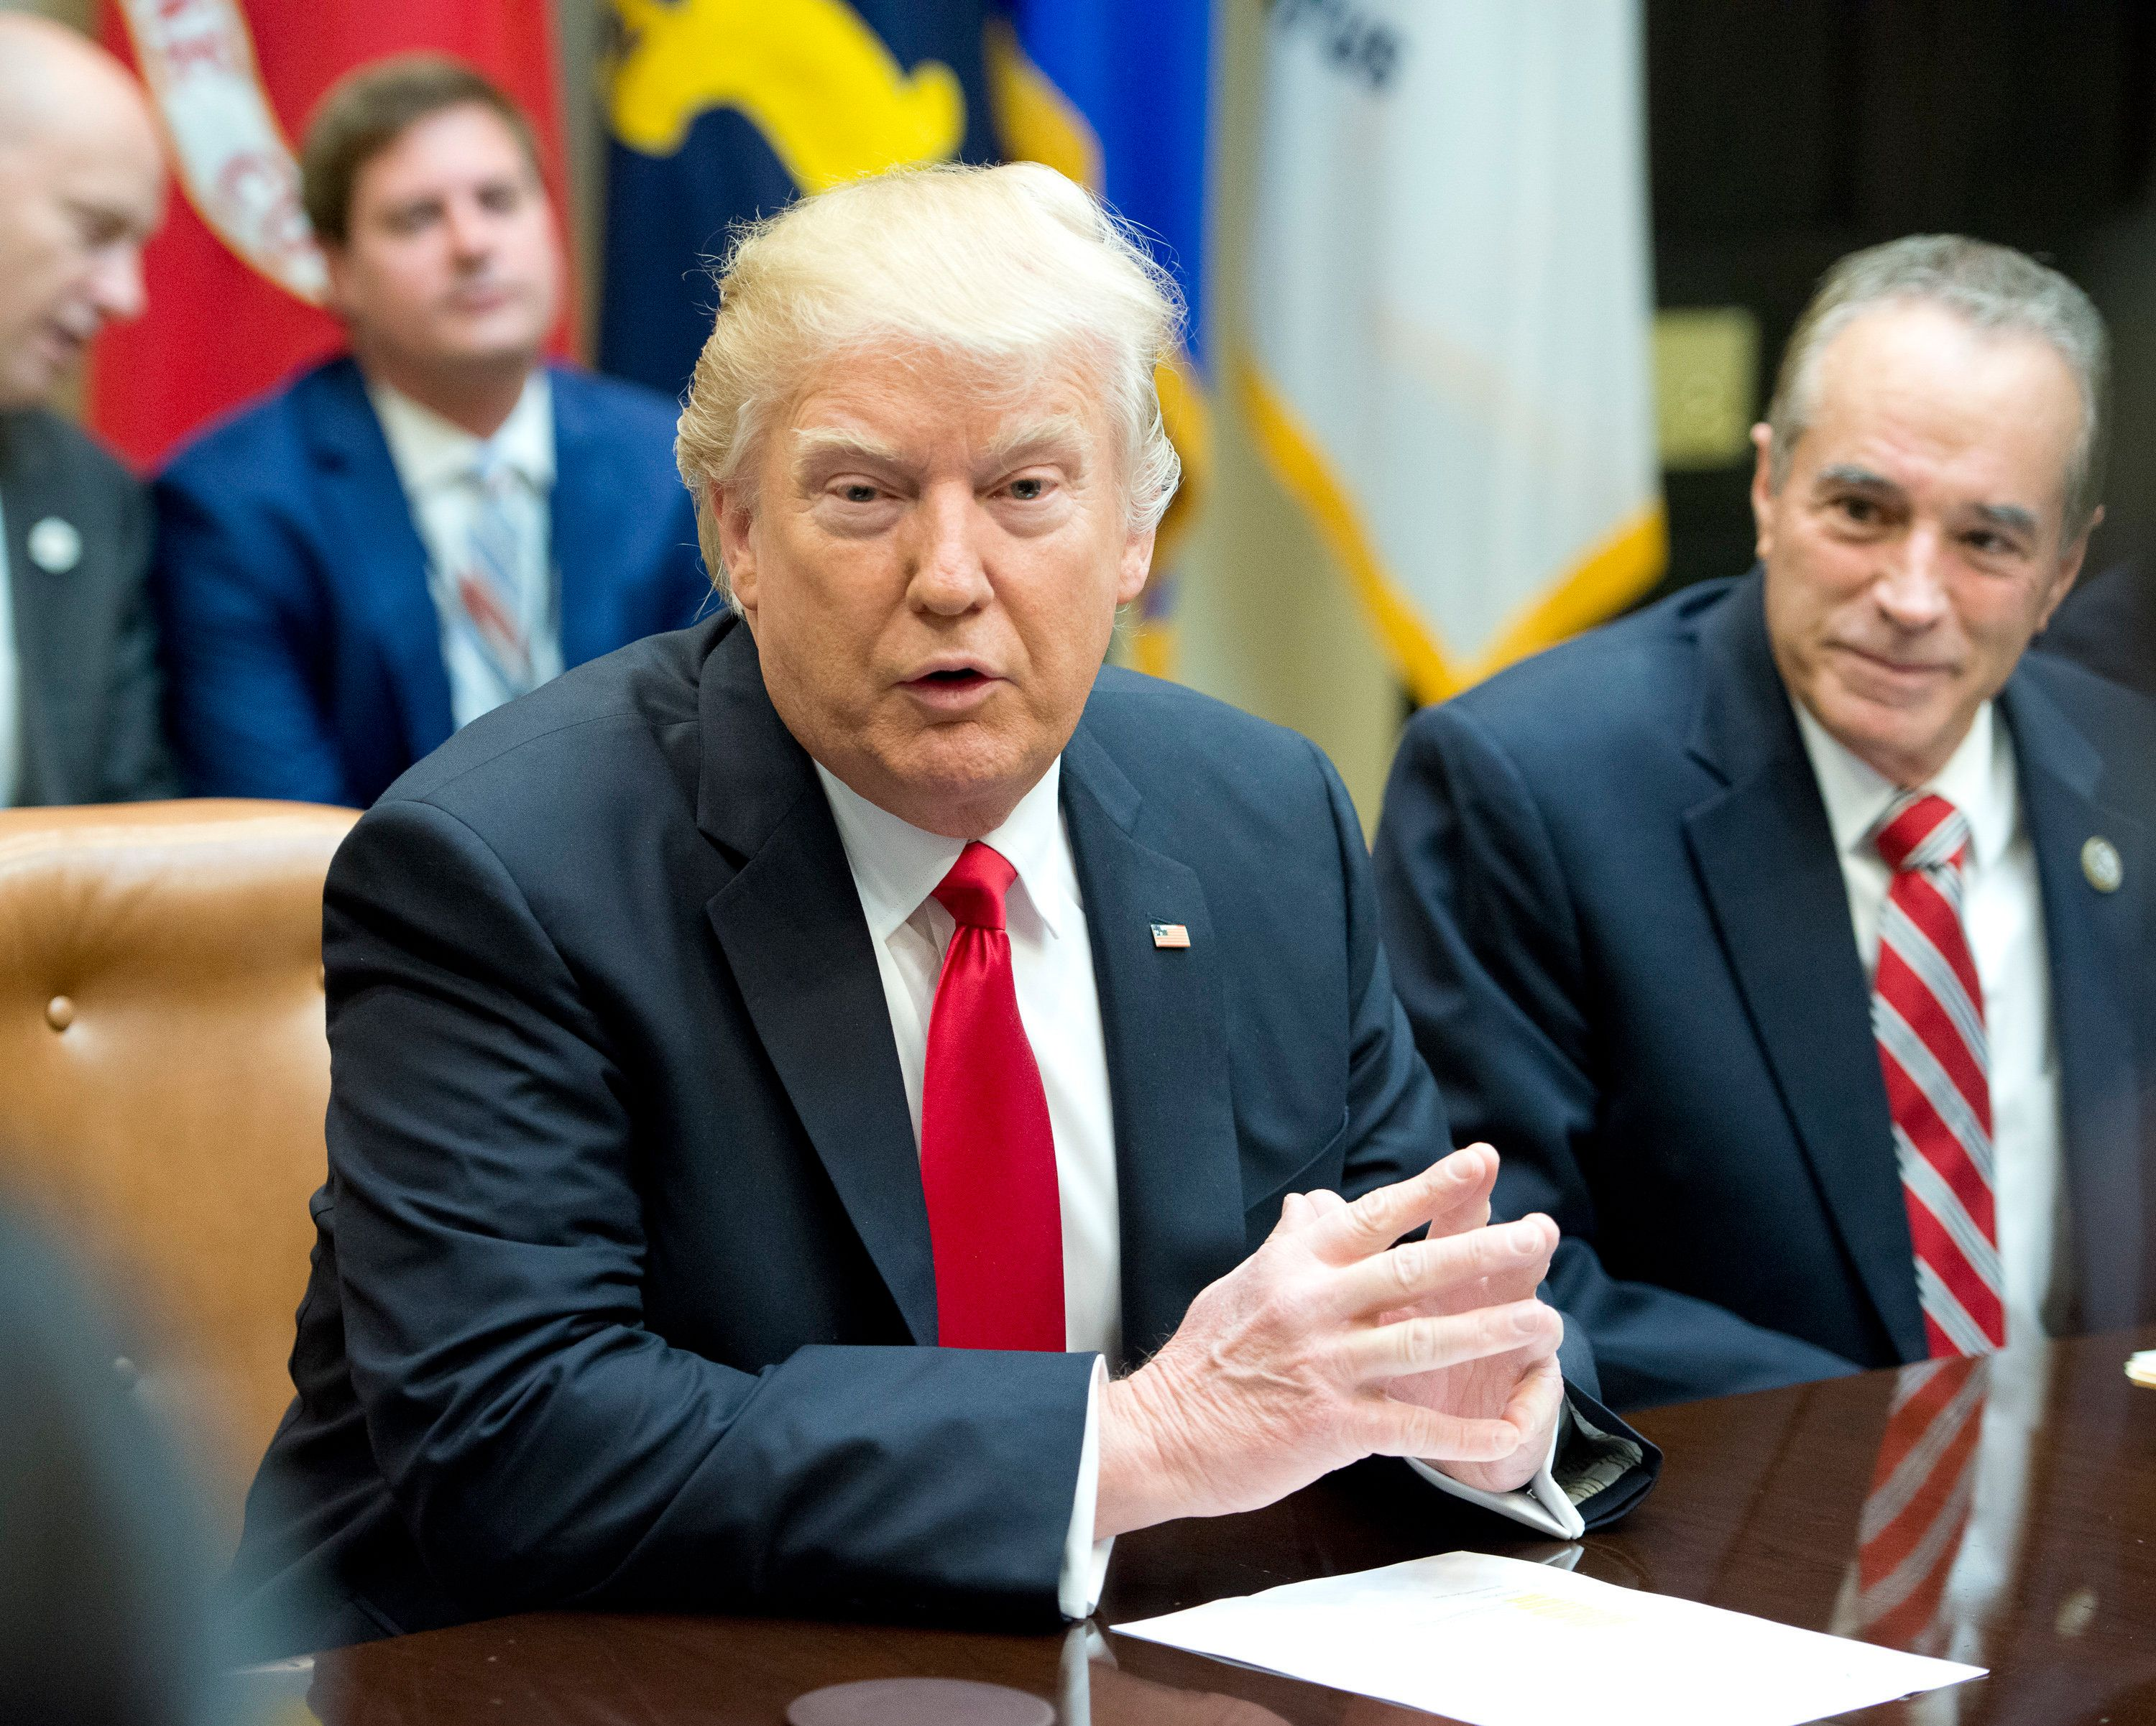 WASHINGTON, D.C. - FEBRUARY 16:  (AFP-OUT) President Donald Trump participates in a congressional listening session with GOP members in the Roosevelt Room of the White House February 16, 2017 in Washington, DC.  Also pictured is Rep. Chris Collins (R-NY). (Photo by Ron Sachs-Pool/Getty Images)